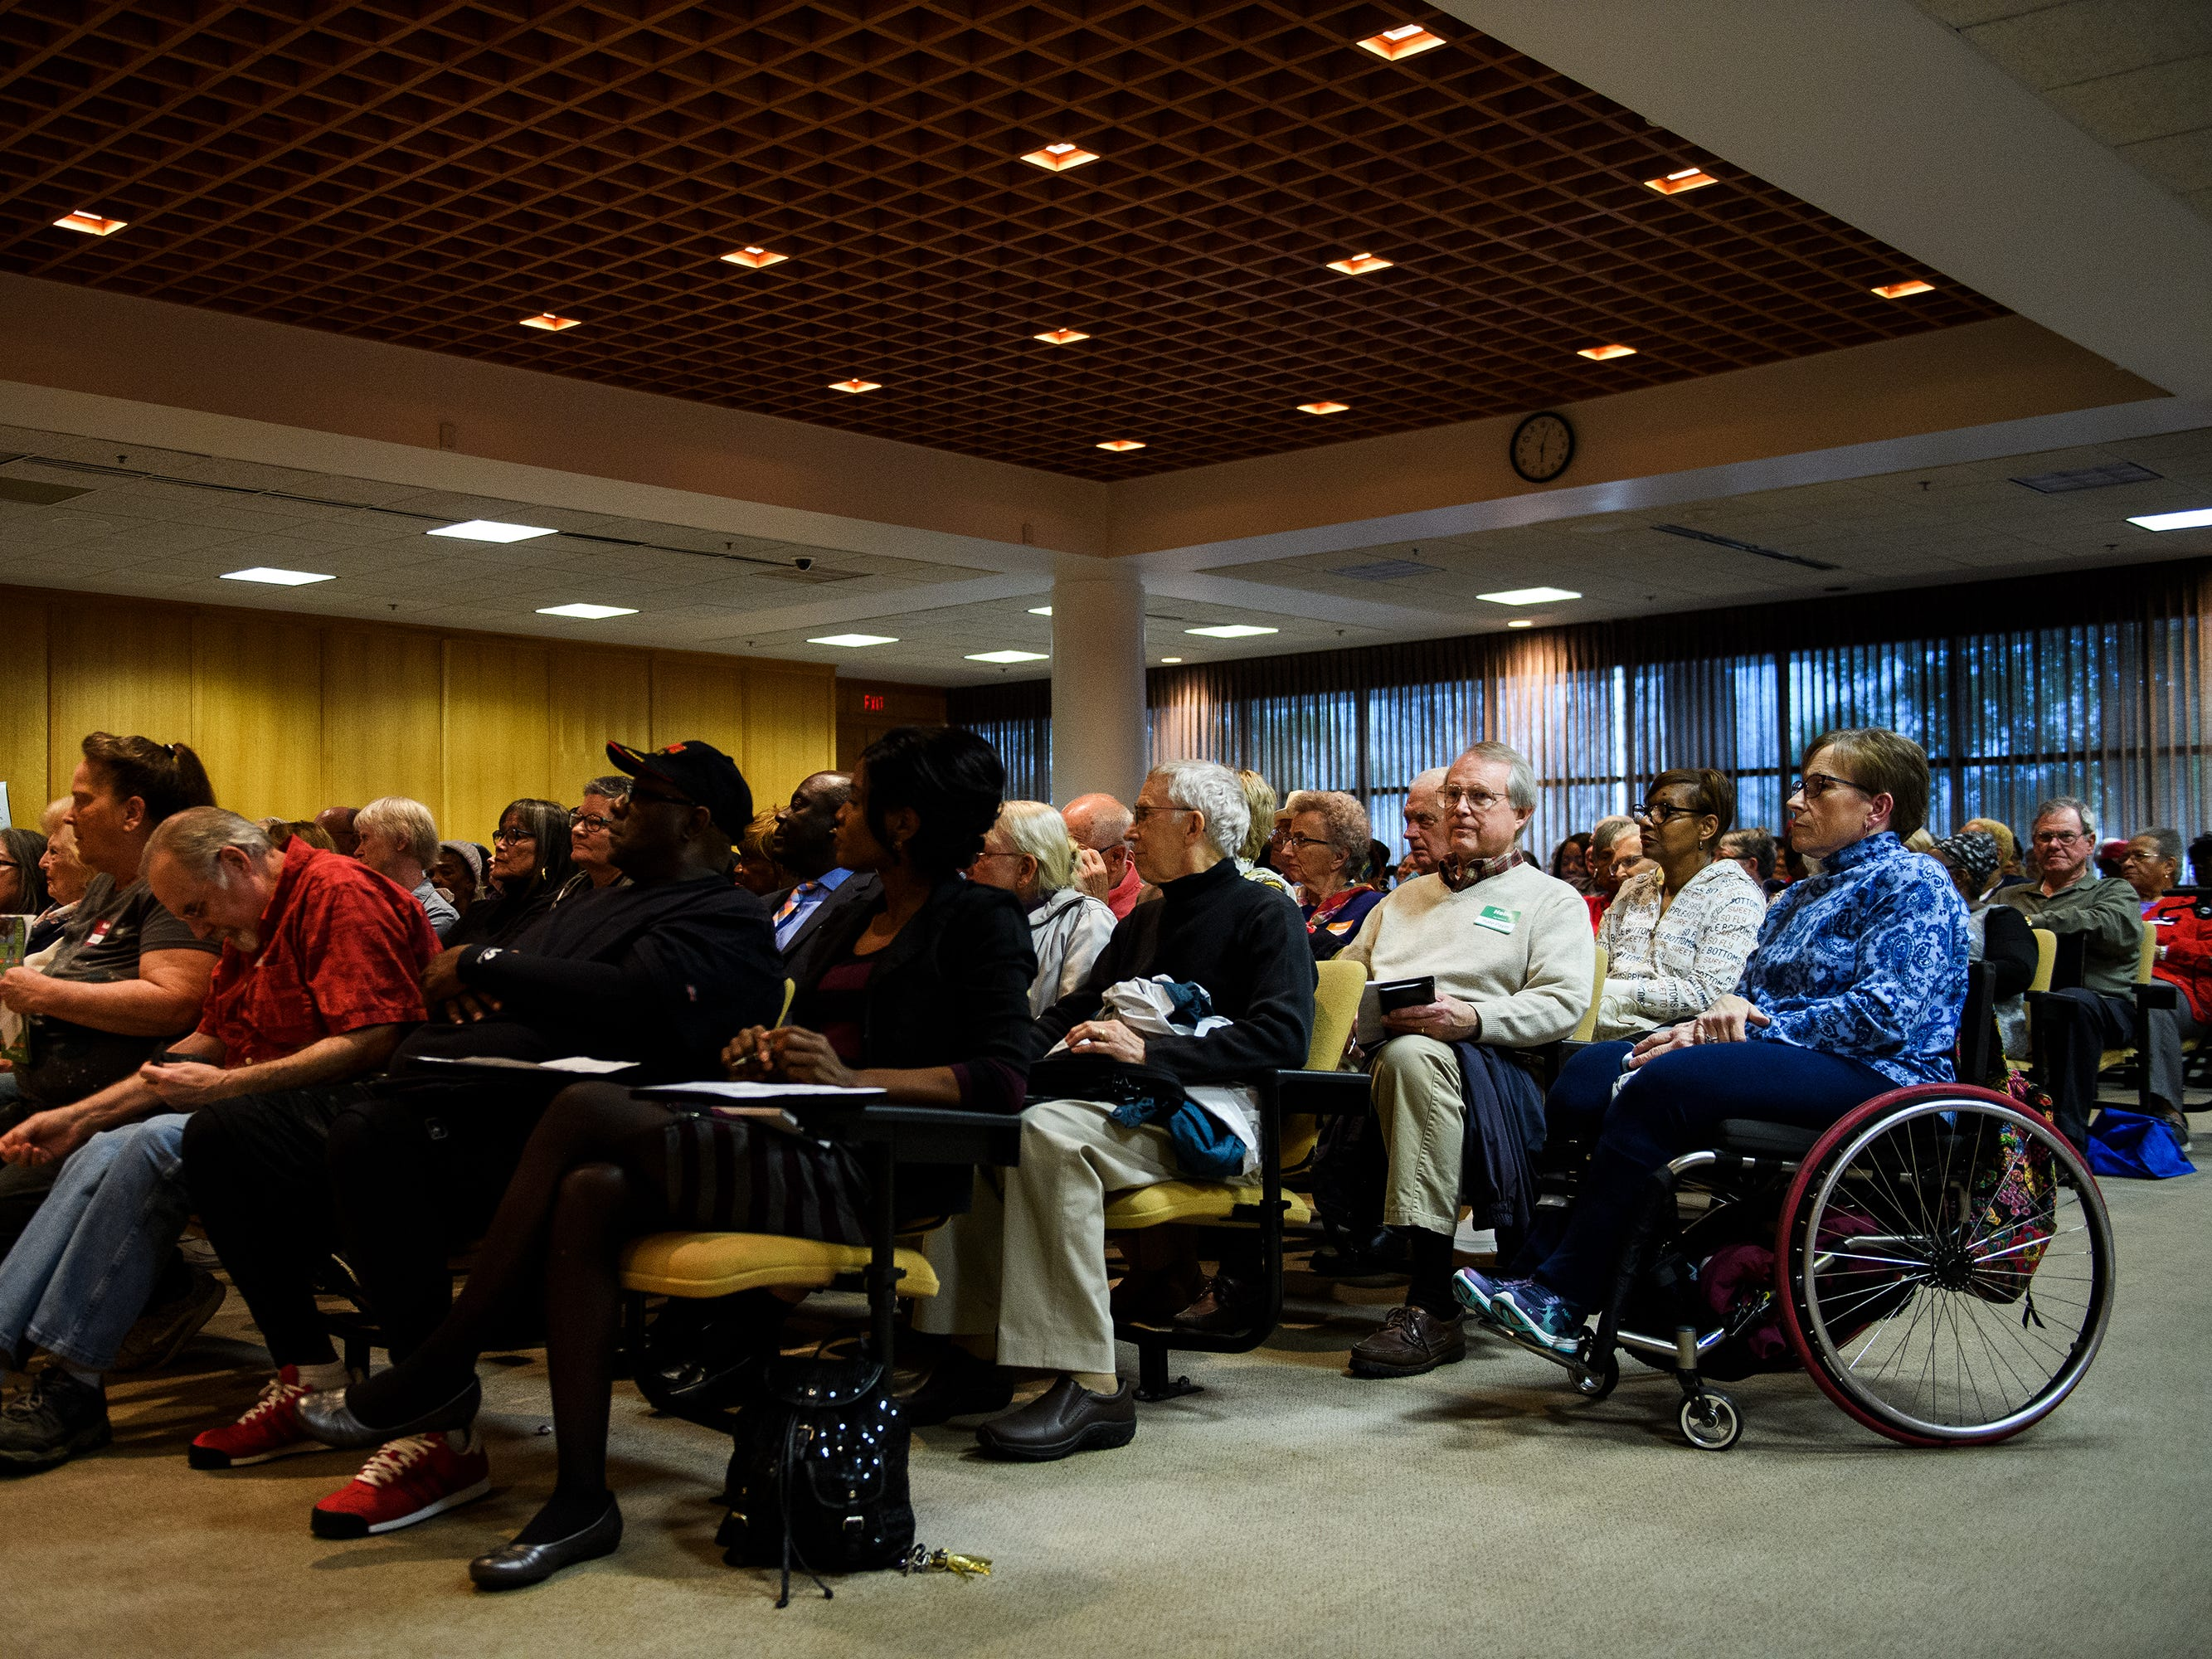 Greenville County residents voice their concerns over a proposed Duke Energy rate increase during a public hearing Thursday, March 14, 2019 at Greenville County Square.